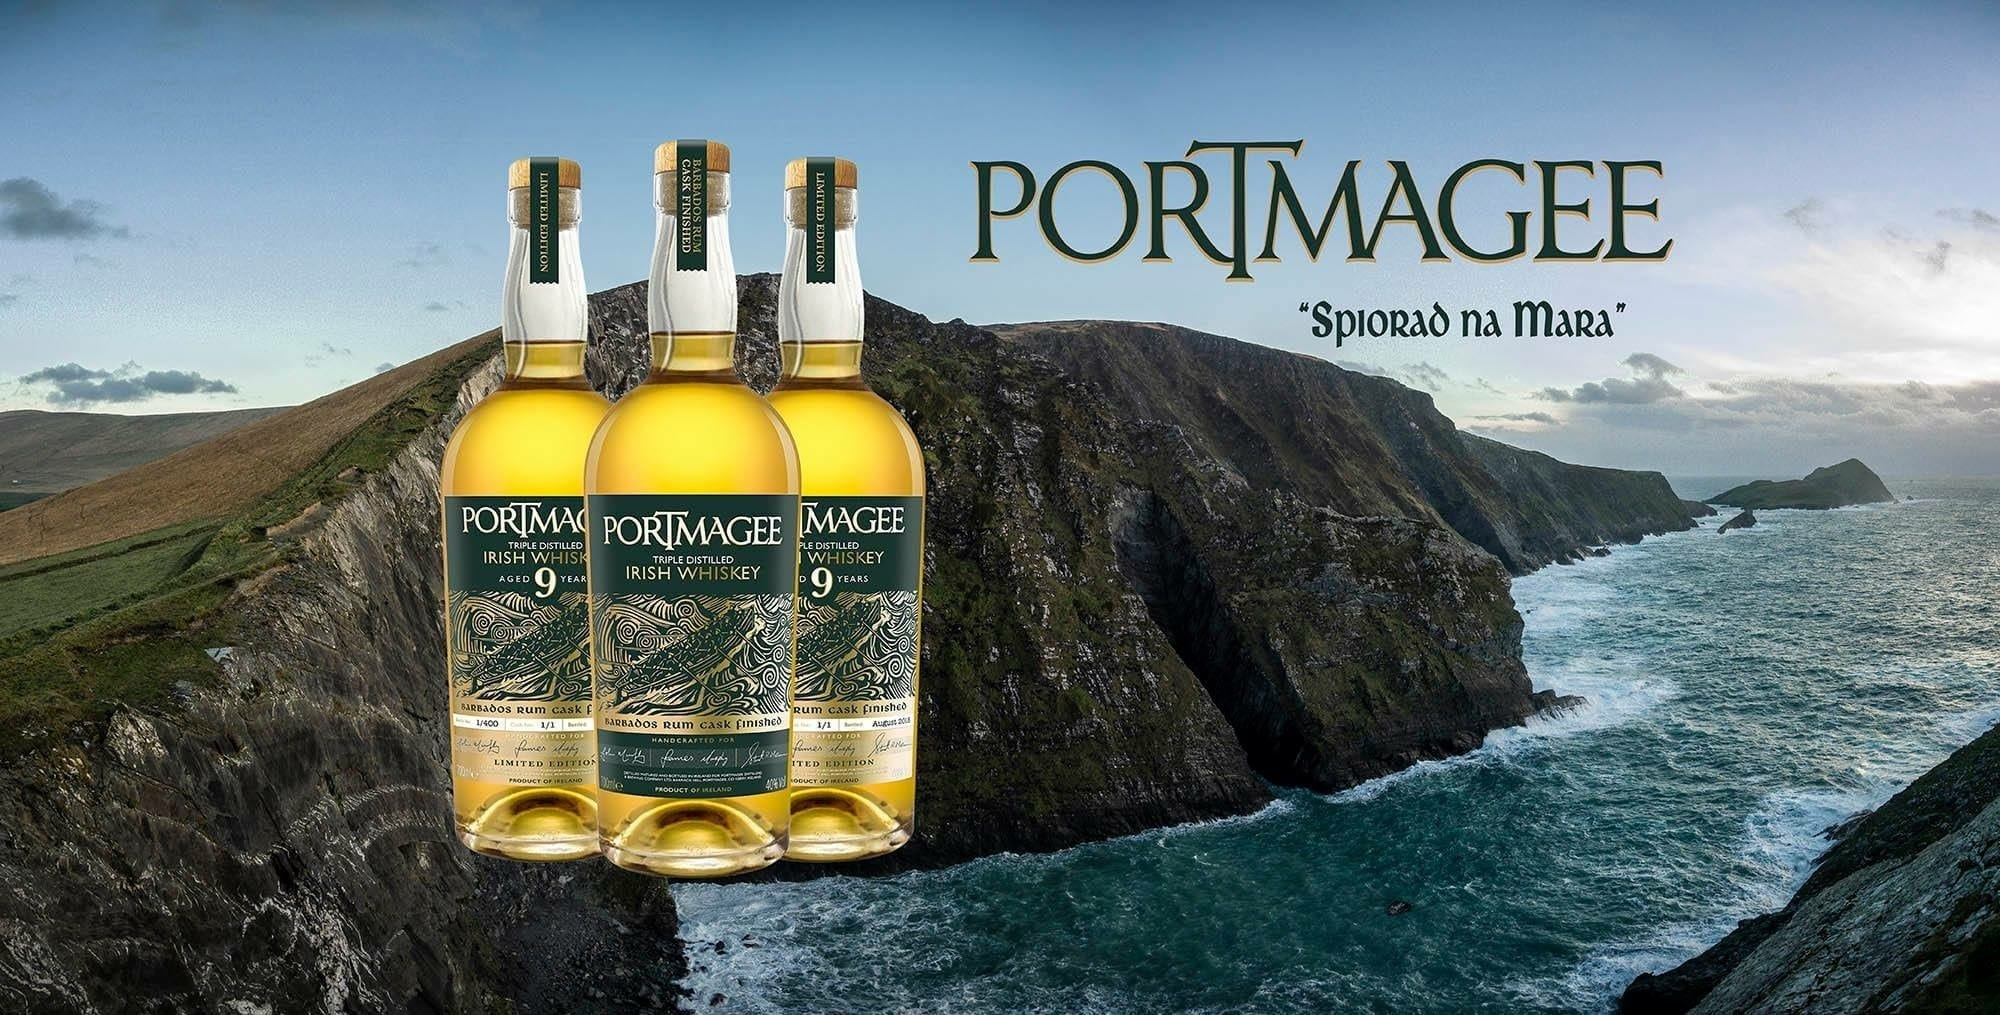 Portmagee 9 Unyaka Old Irish Whiskey Isibuyekezo uStuart McNamara Irish Whiskey-Blogger